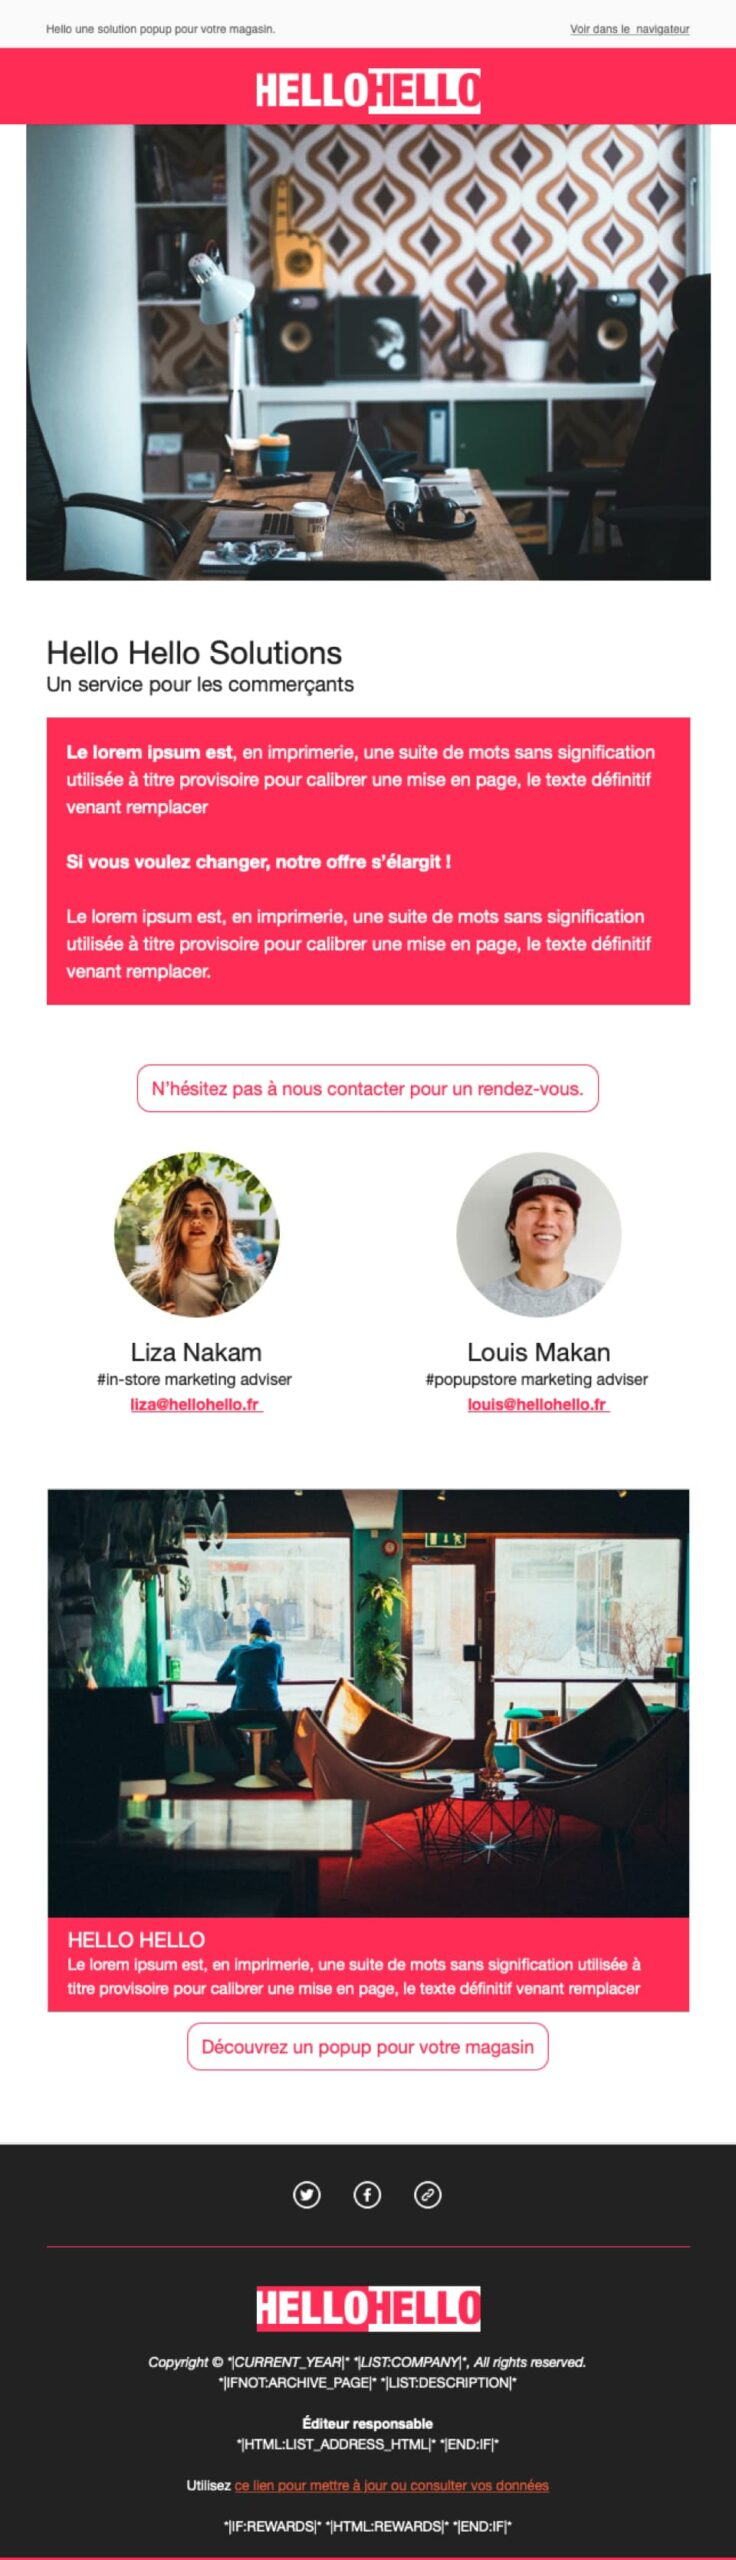 Newsletter 2 colonnes Template editable Mailchimp